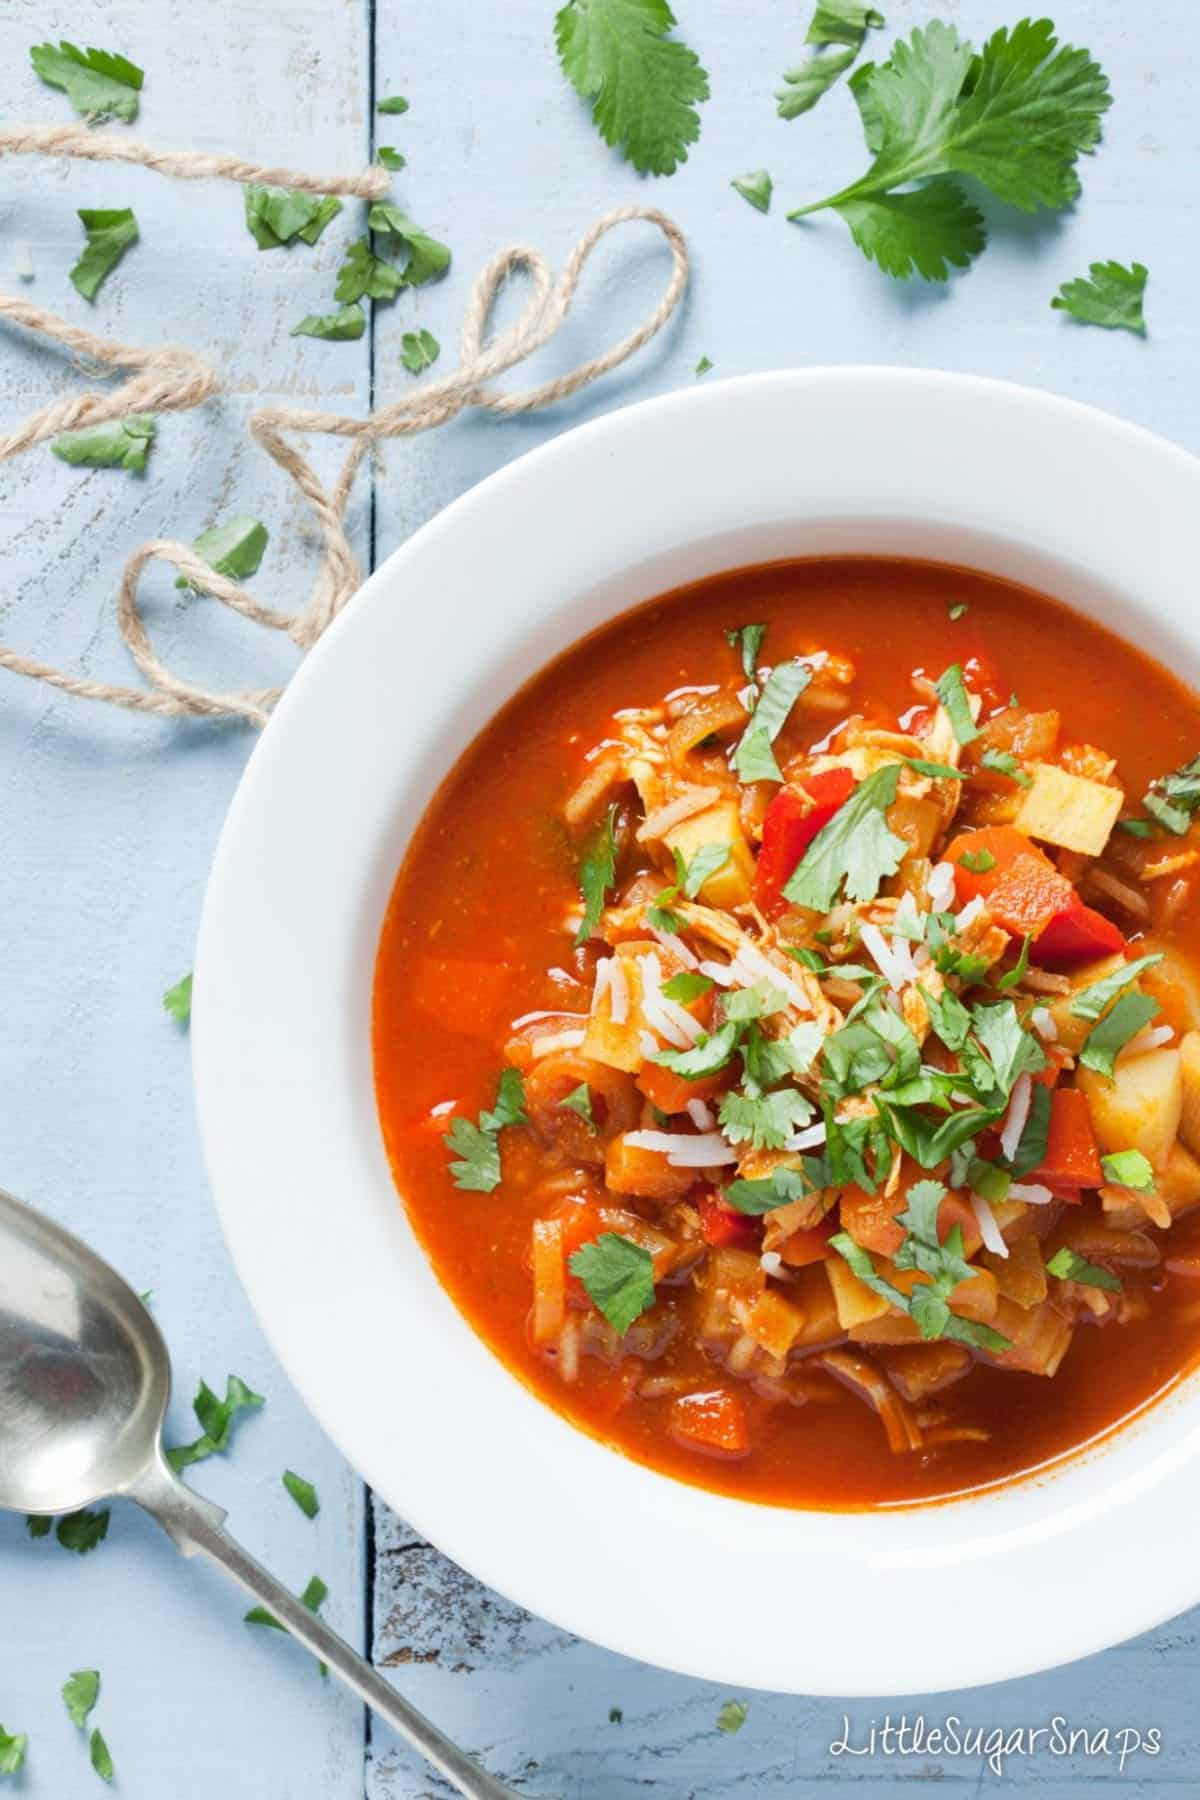 Red coloured Mulligatawny Soup in a bowl garnished with fresh coriander